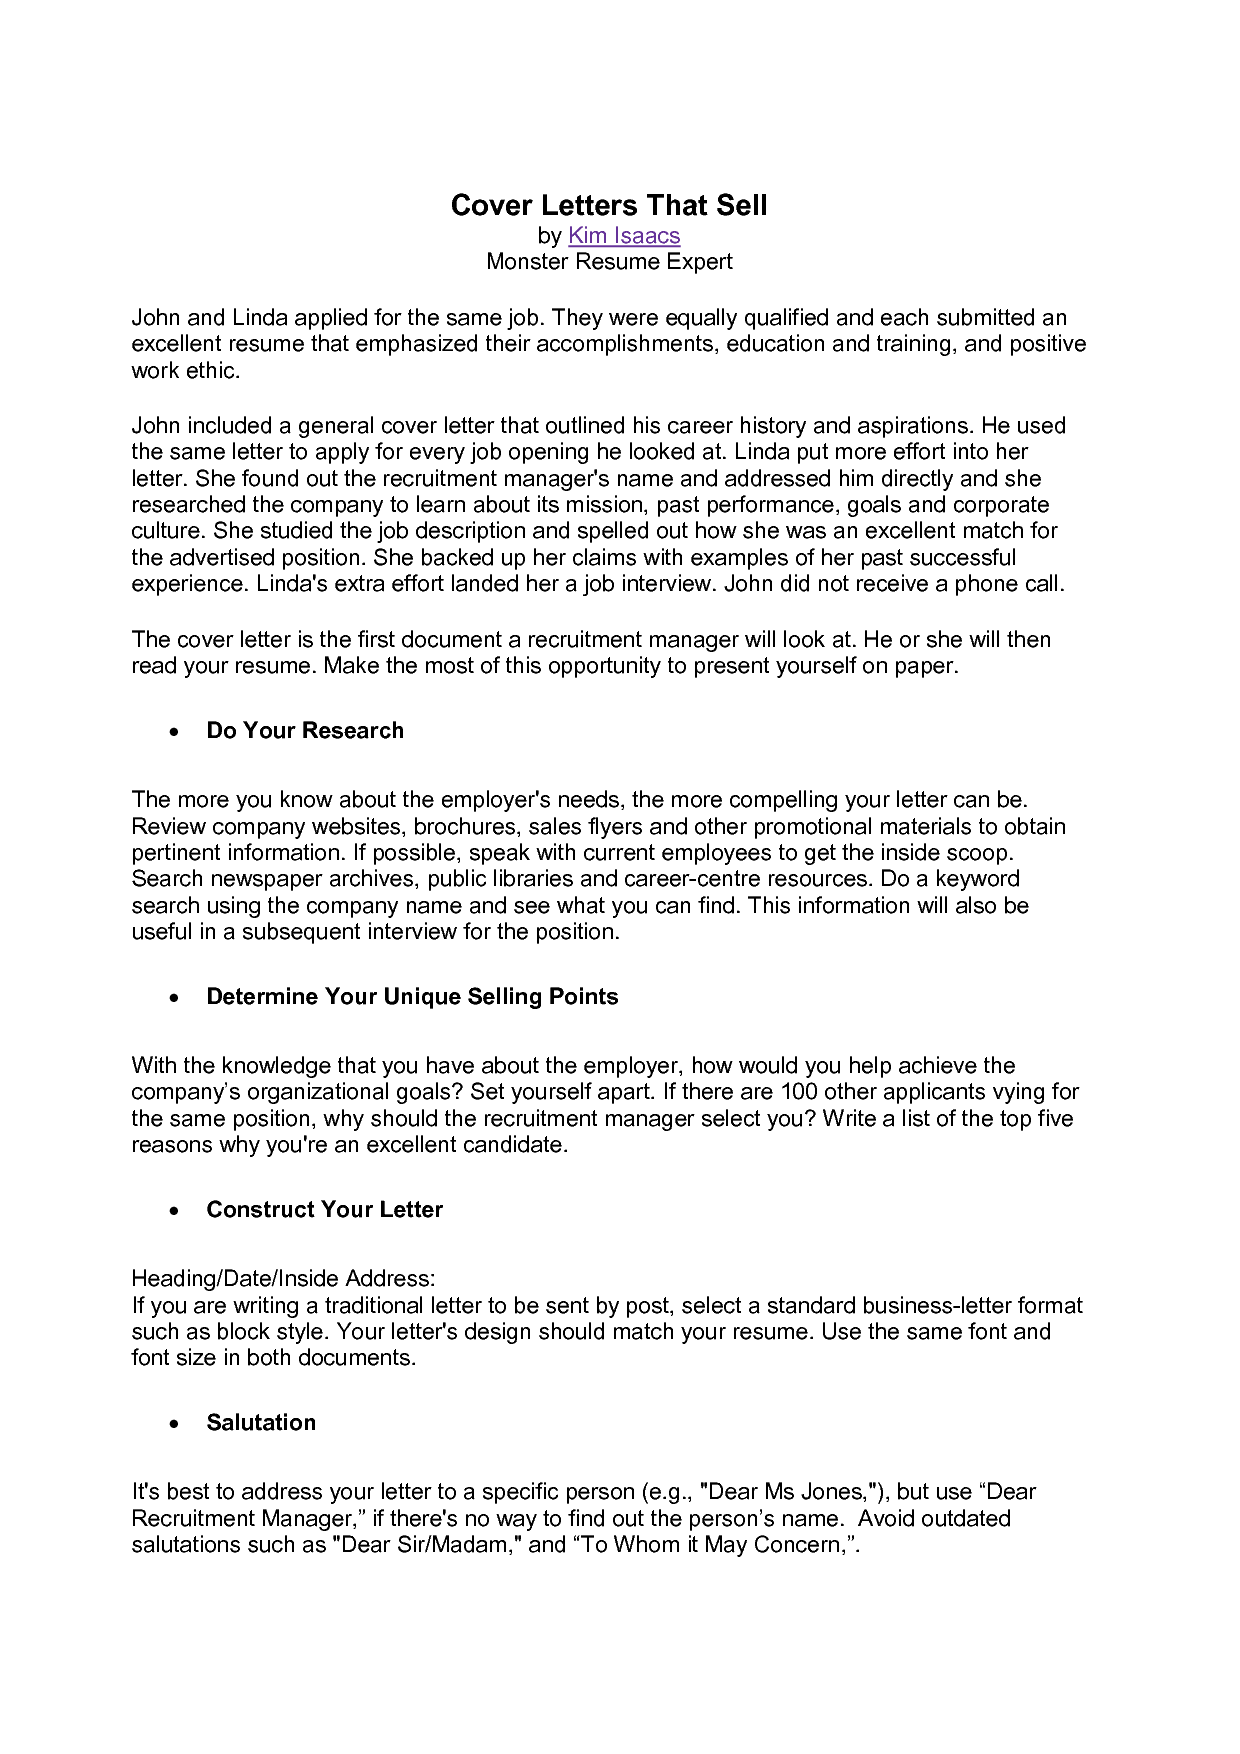 Cover Letter Dear New Monster Cover Letter Free Download Monster Cover Letter Monster Design Ideas